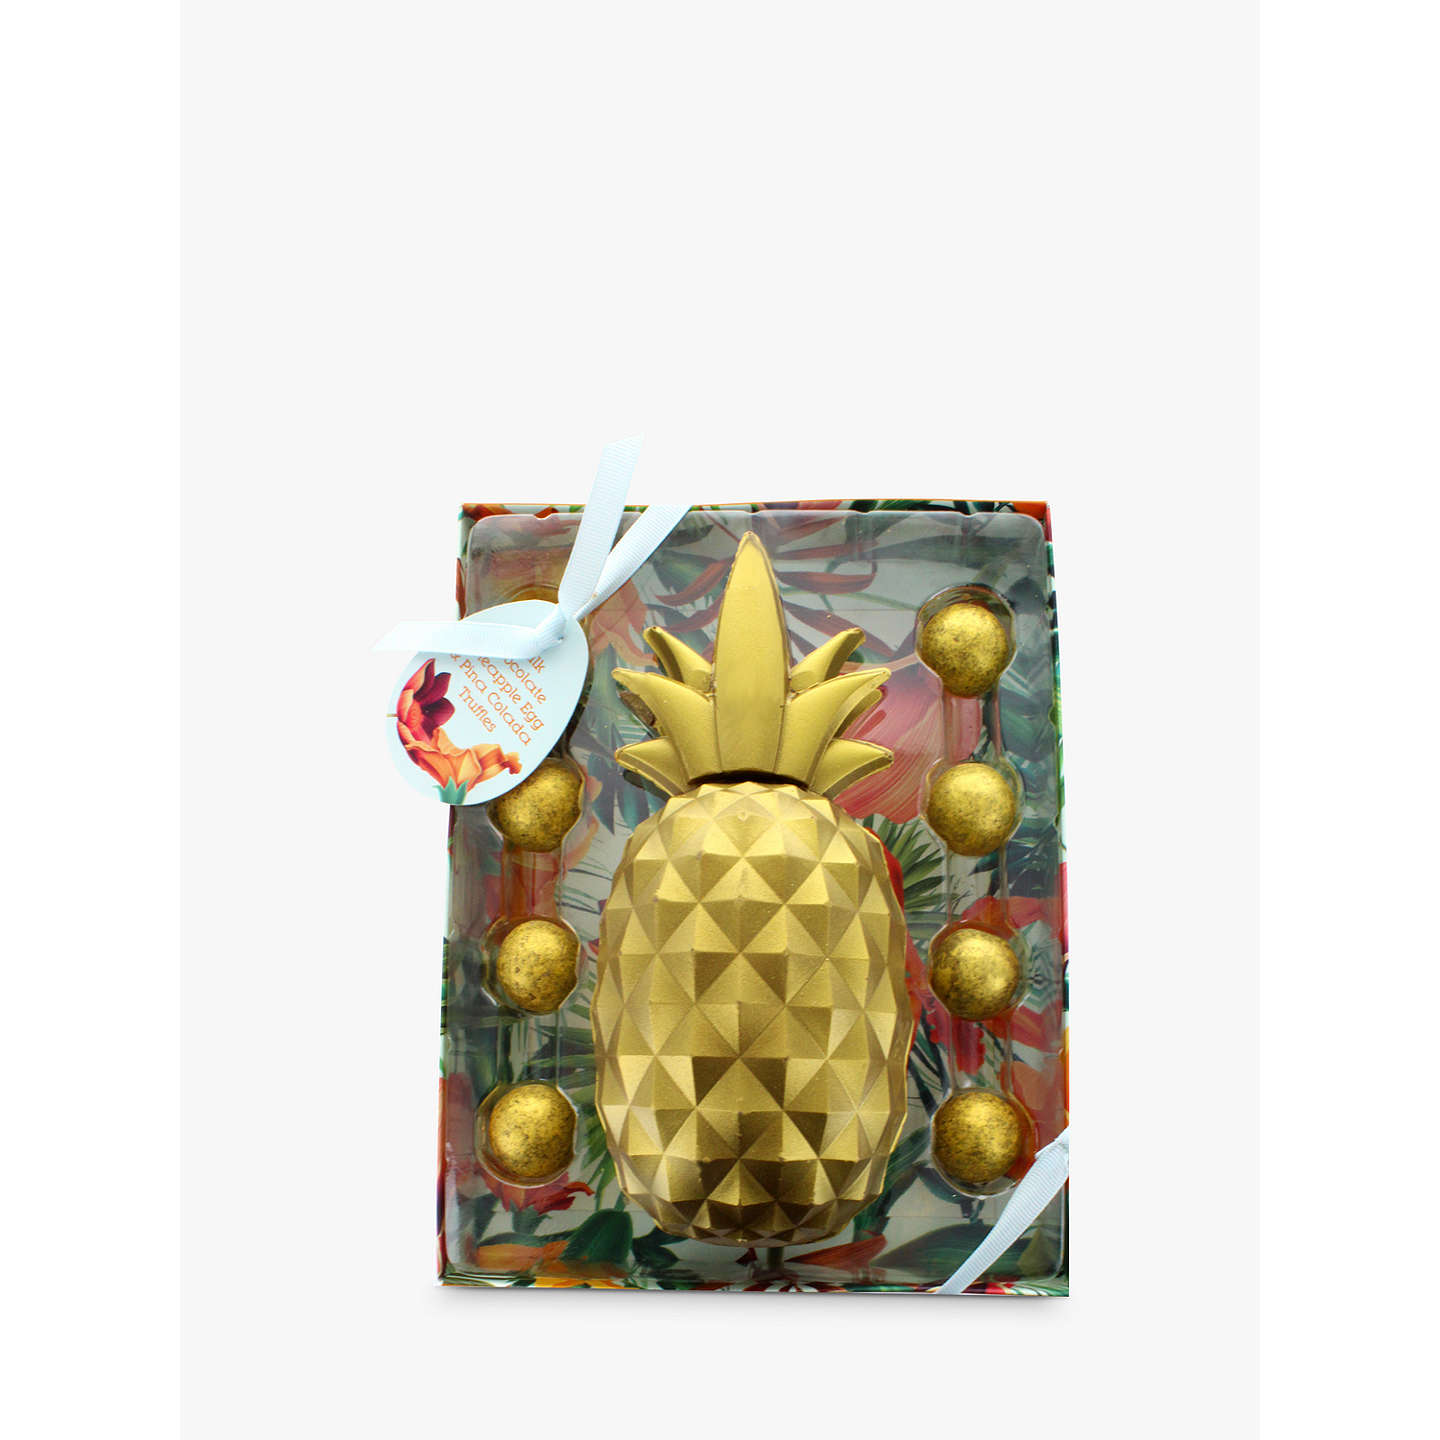 Artisan du chocolat pineapple easter egg 200g at john lewis buyartisan du chocolat pineapple easter egg 200g online at johnlewis negle Images